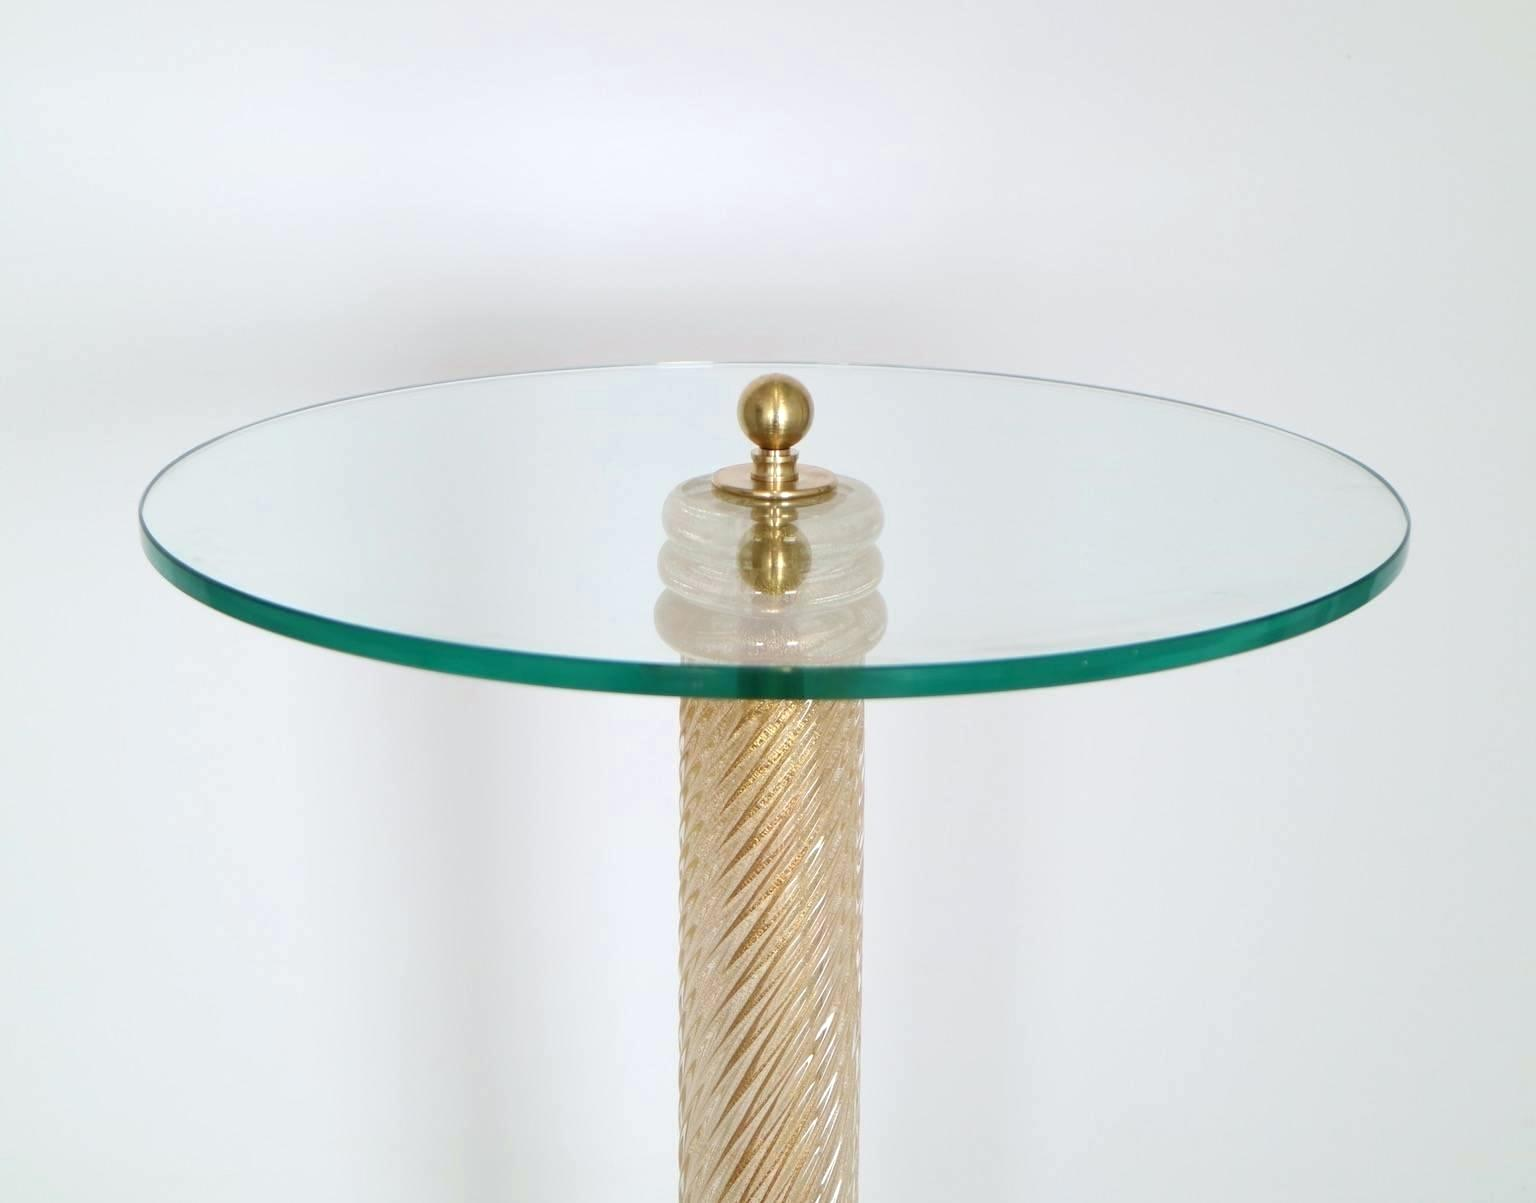 home matte gold metal glass side end table and coffee regency with circular top pedestal swirled quatrefoil accent leaf accented frame small dark wood console cabinet door pulls